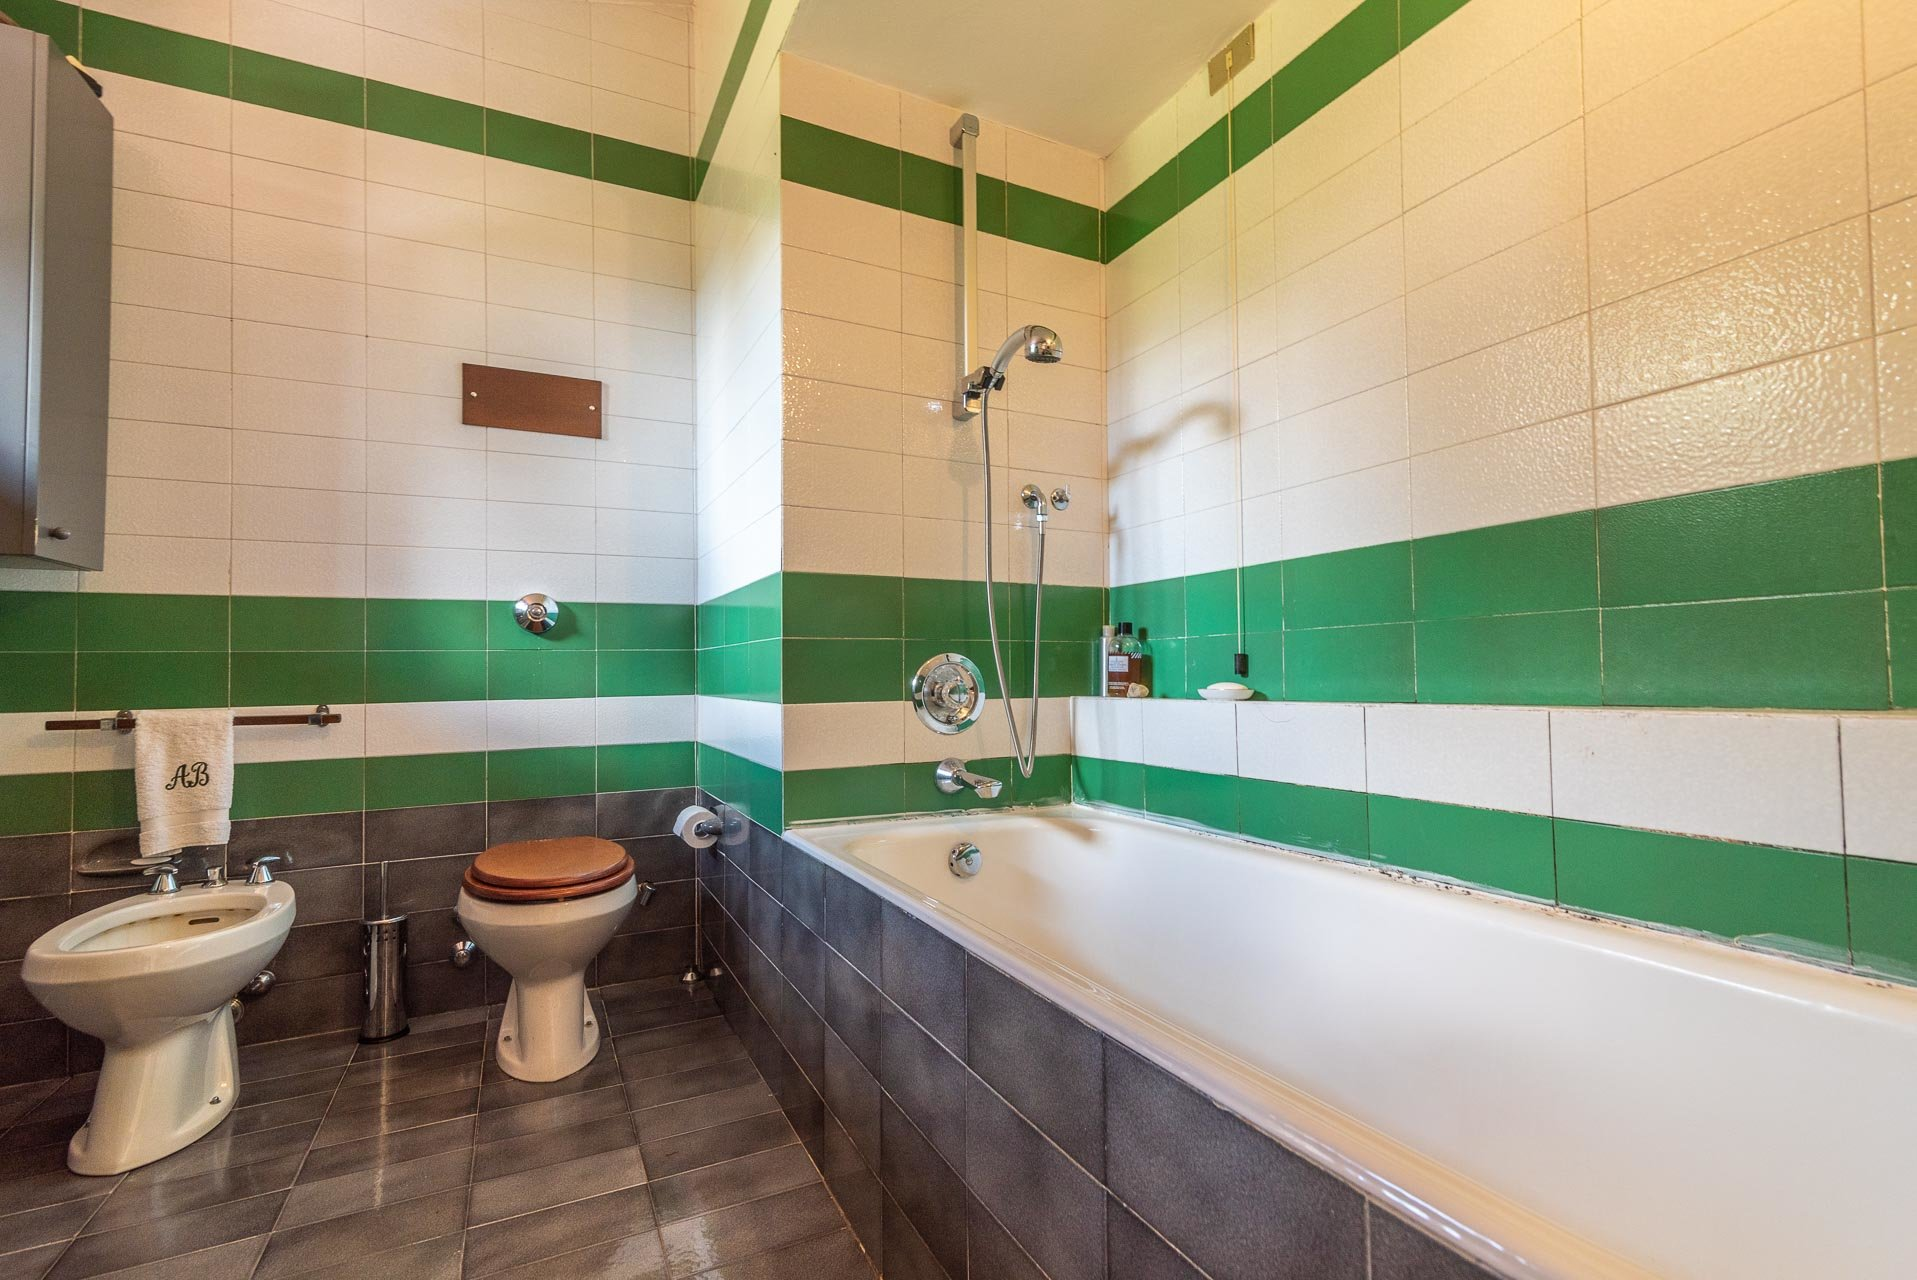 Villa with swimming pool for sale in Gignese - bathroom with tub